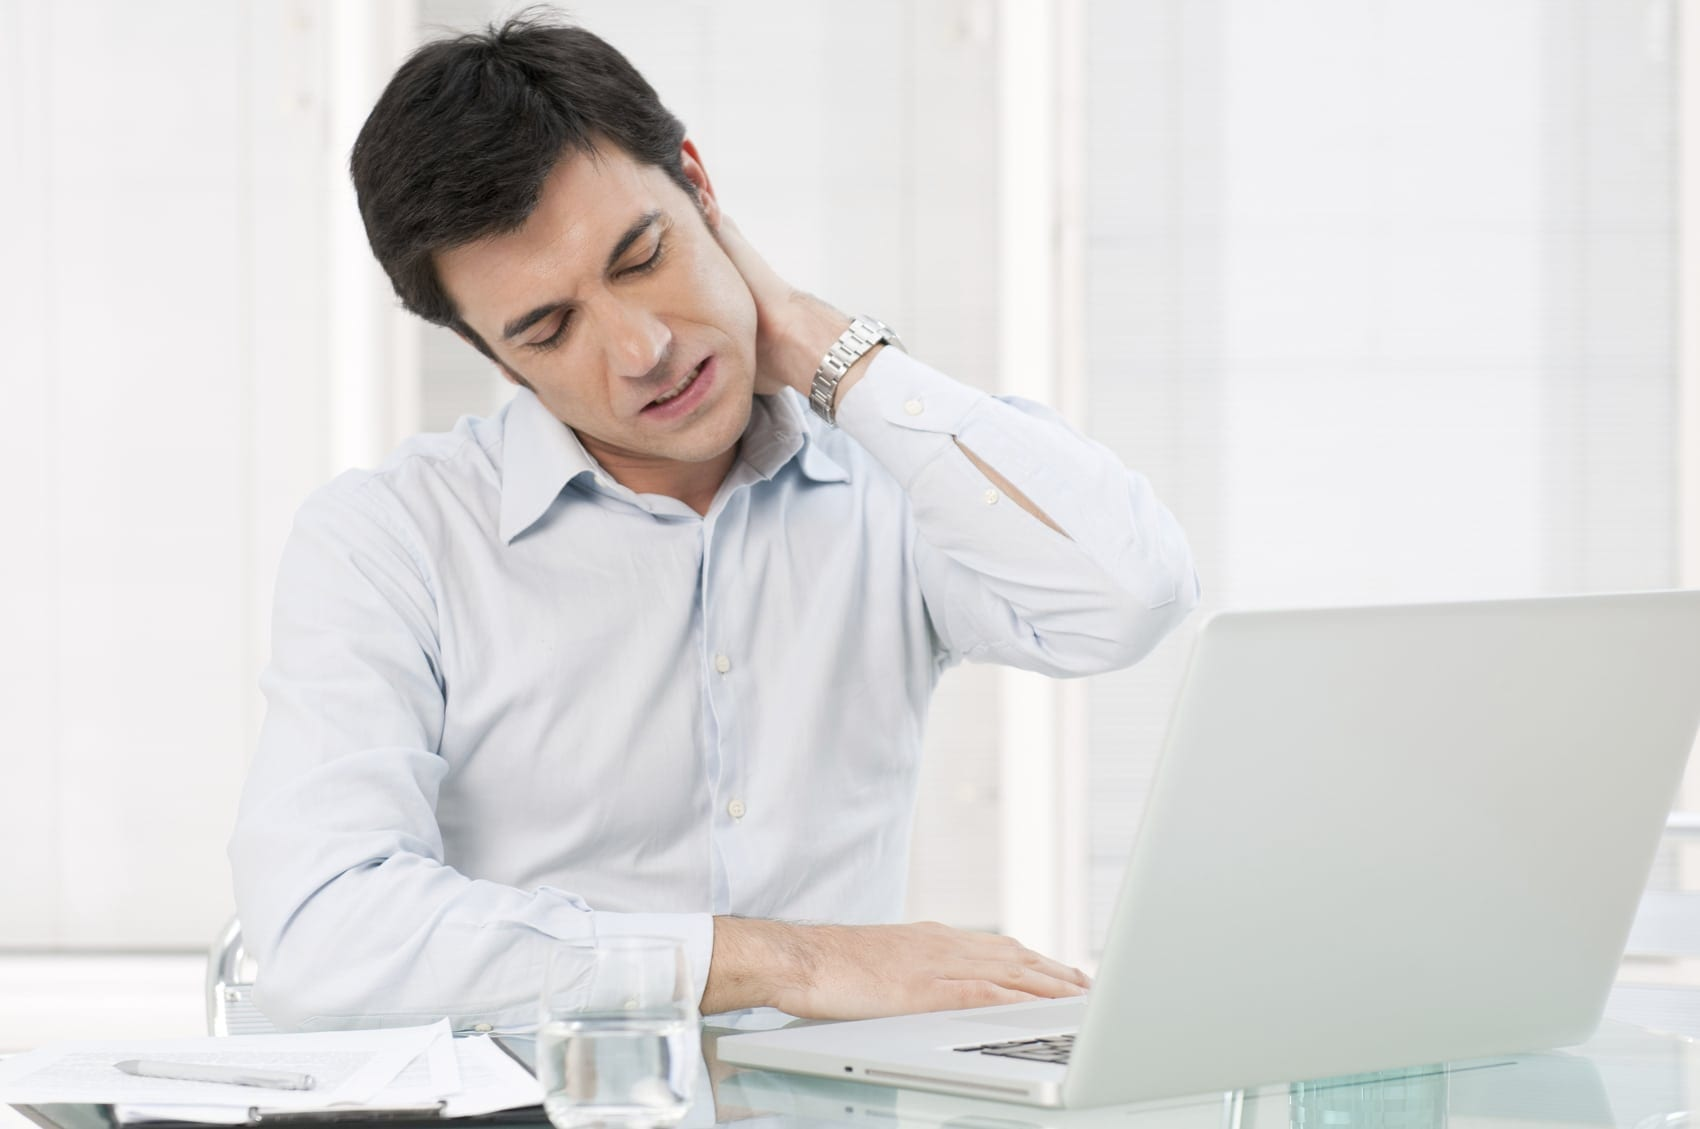 Man Experiencing Neck Pain While Working On Laptop Computer